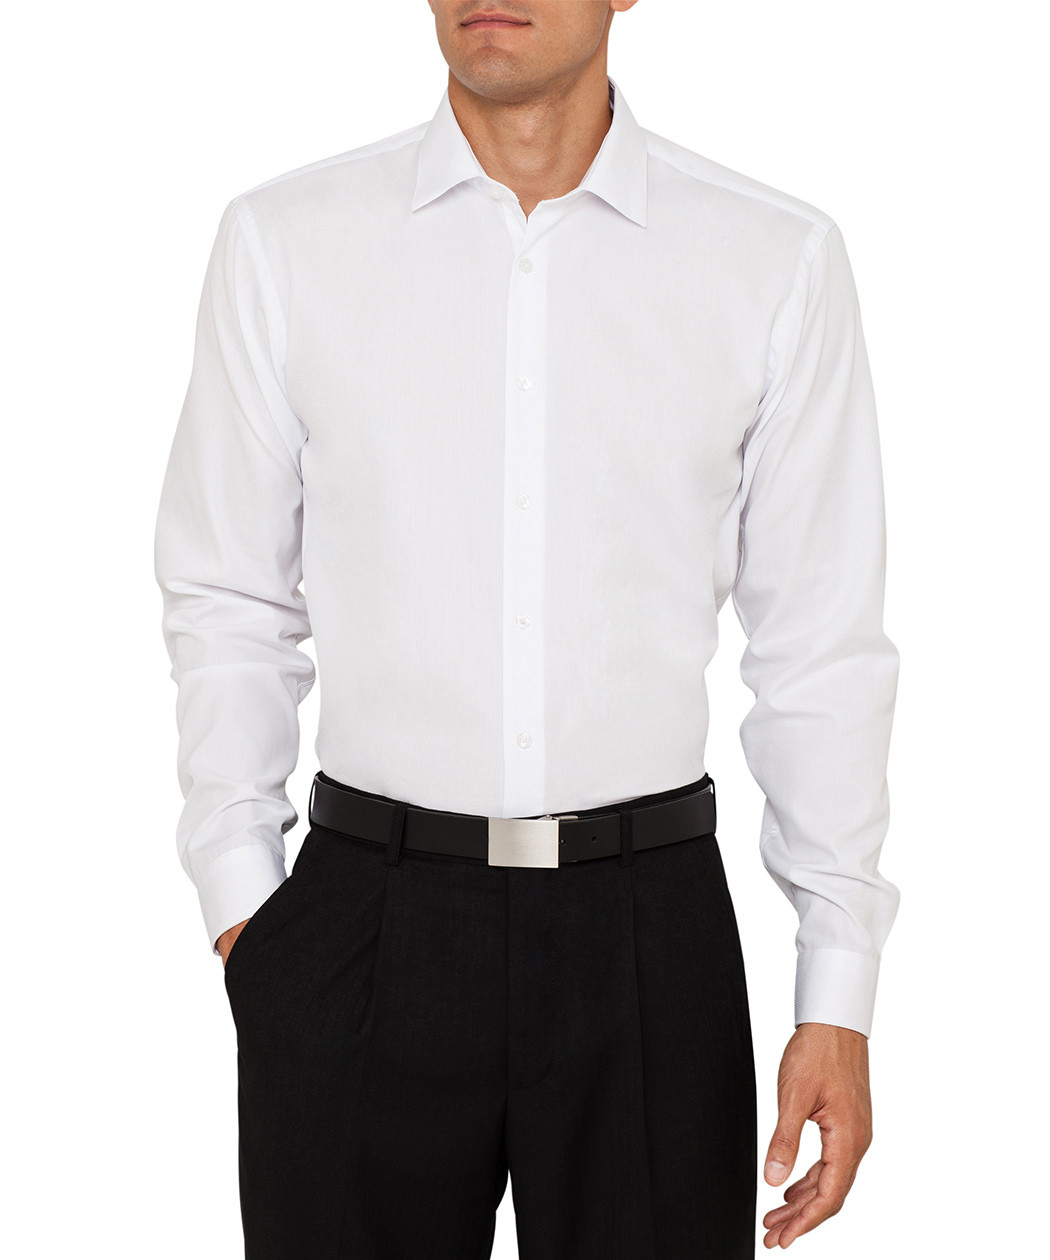 How to pick a good quality business shirt the for Corporate shirts for men